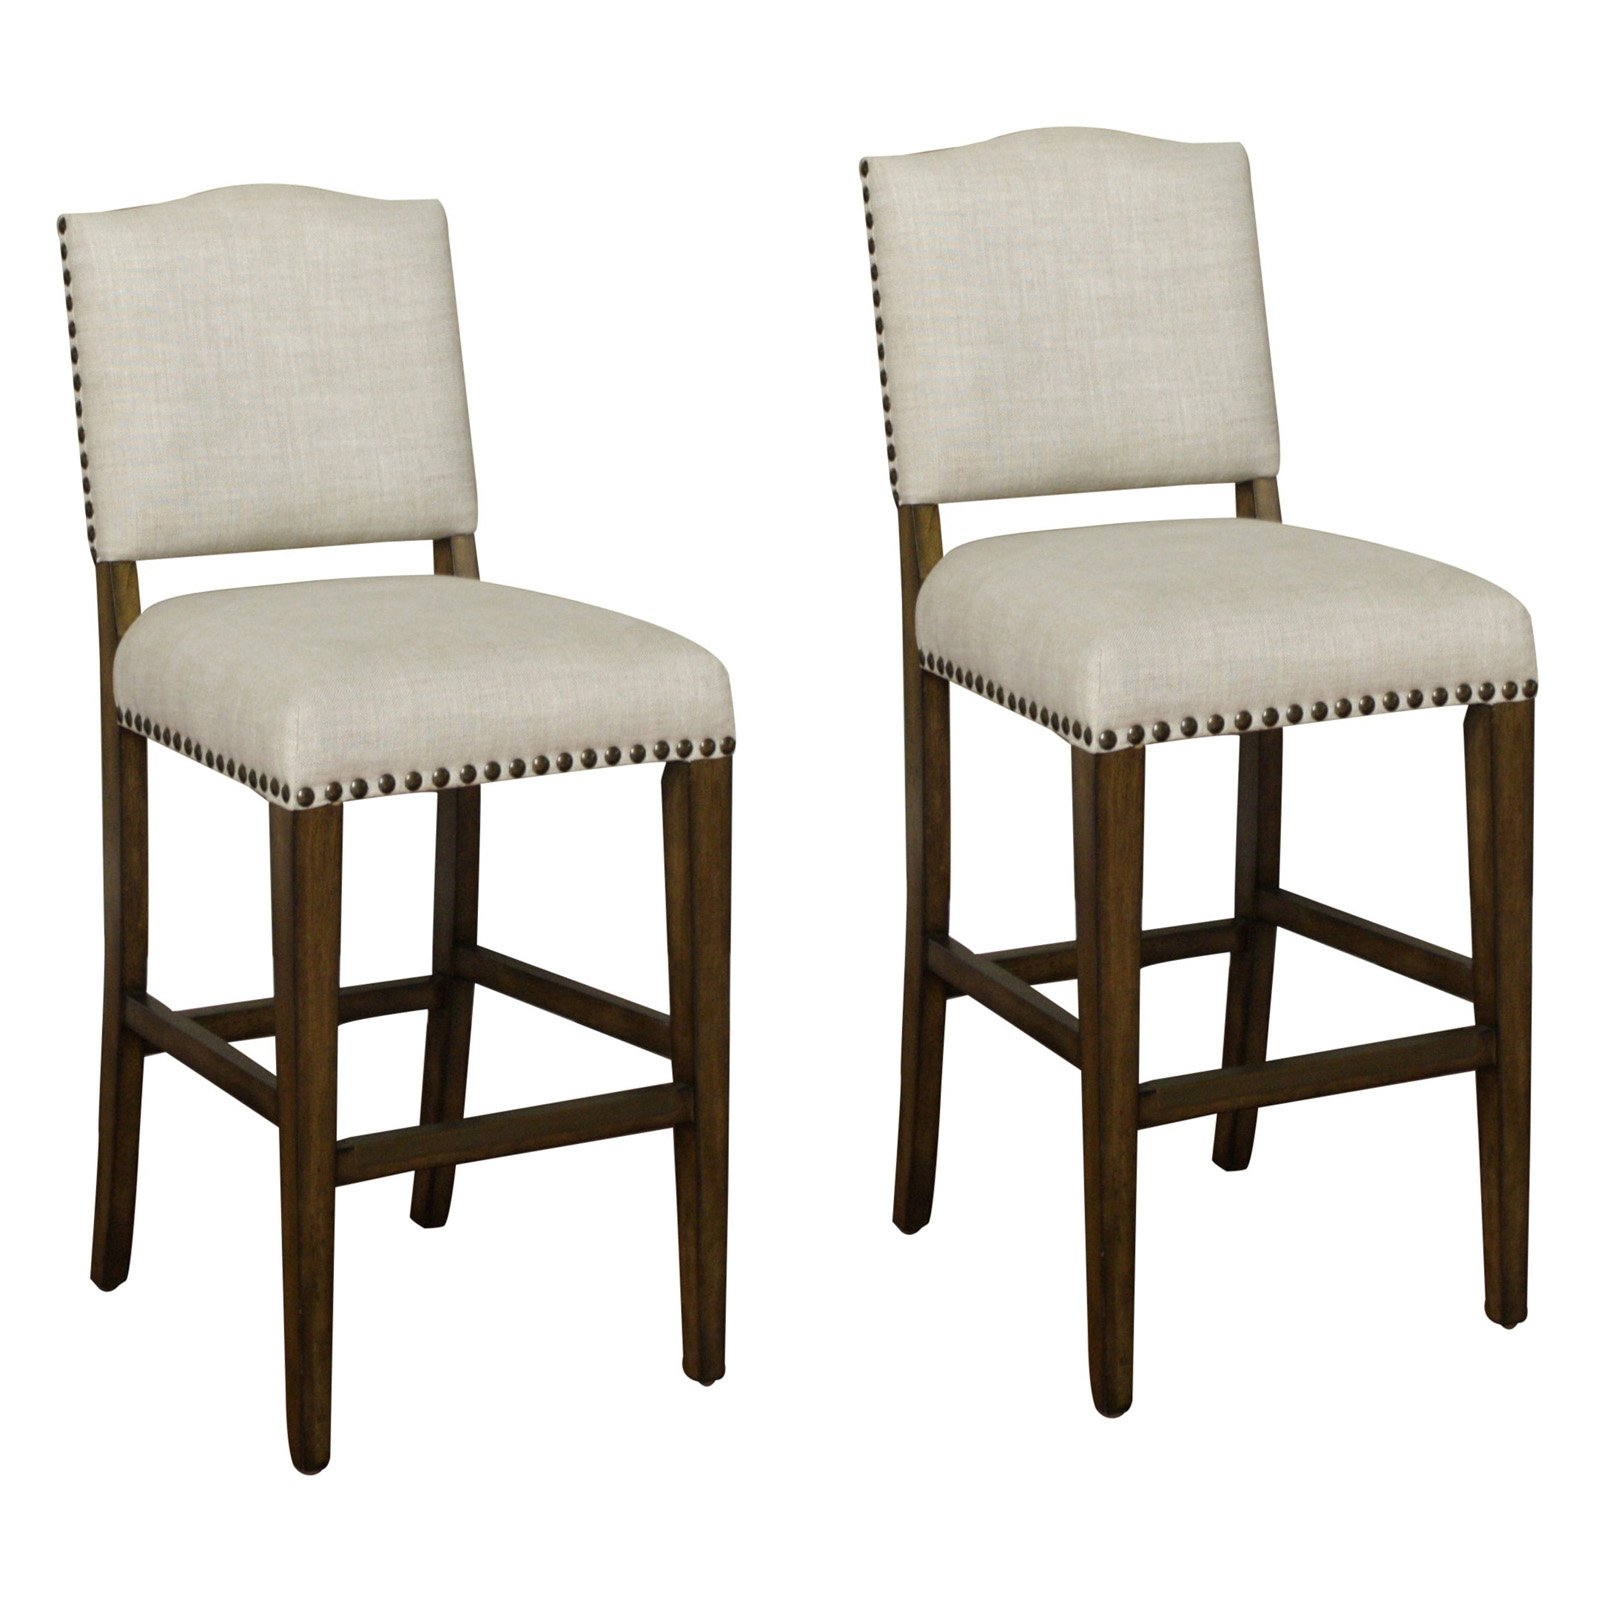 AHB Worthington Tall Bar Stool - Coastal  Gray with Sahara Sand Linen Upholstery - Set of 2